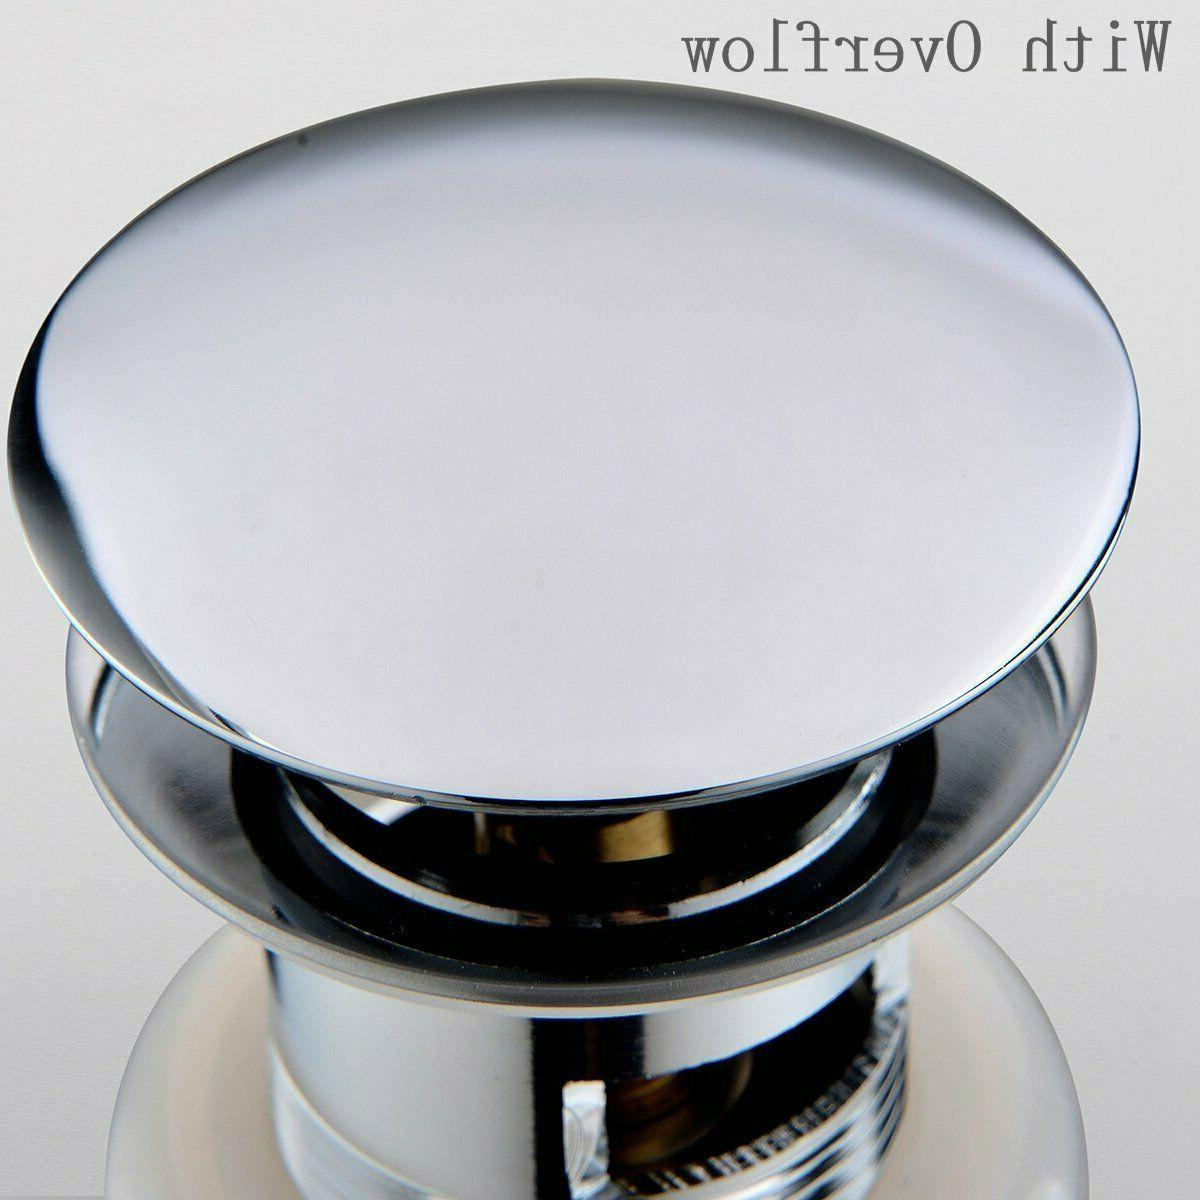 Waterfall Faucet Rectangular Spout Base Cover